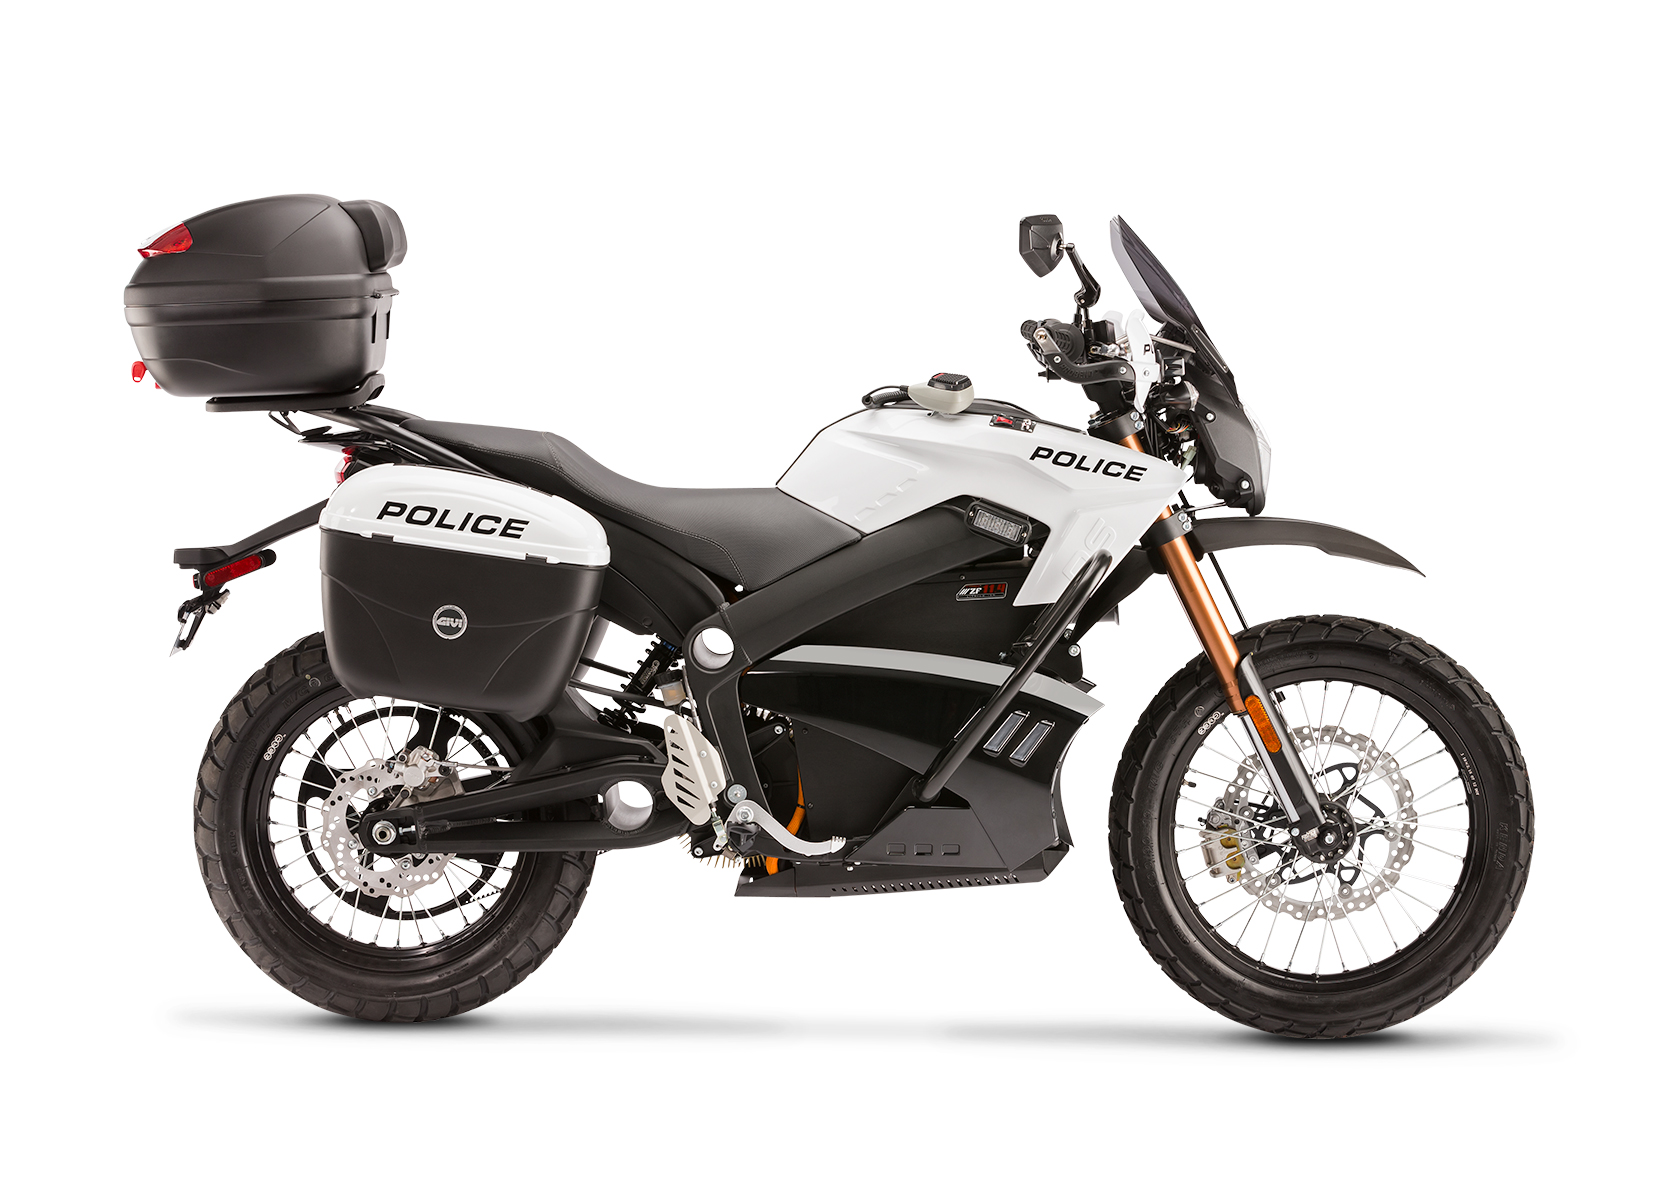 2013 Zero Police Electric Motorcycle: Right profile, White Background